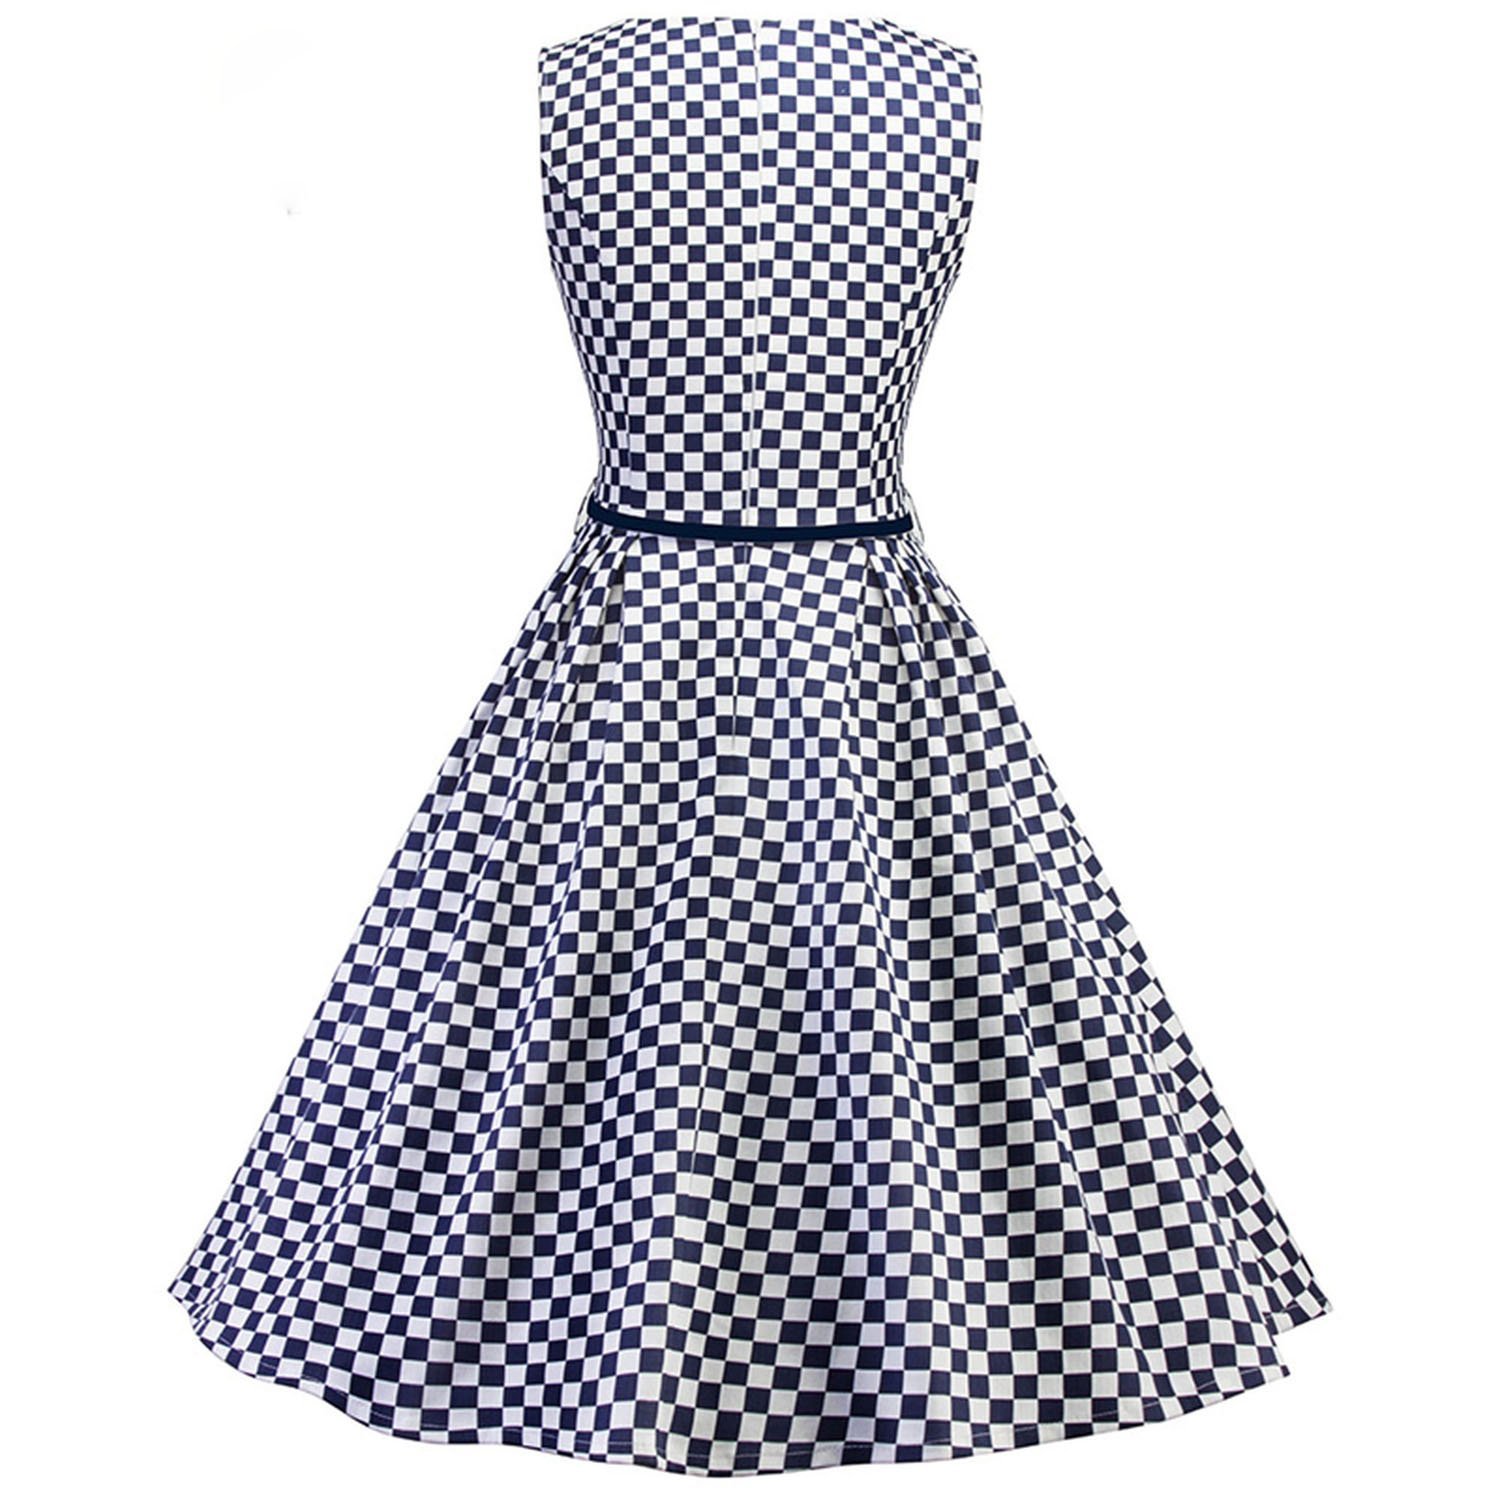 1586346dc17 Vintage 1950s Summer Dress Womens Square Neck Sleeveless Belt a line Plaid  Office Dress at Amazon Women s Clothing store